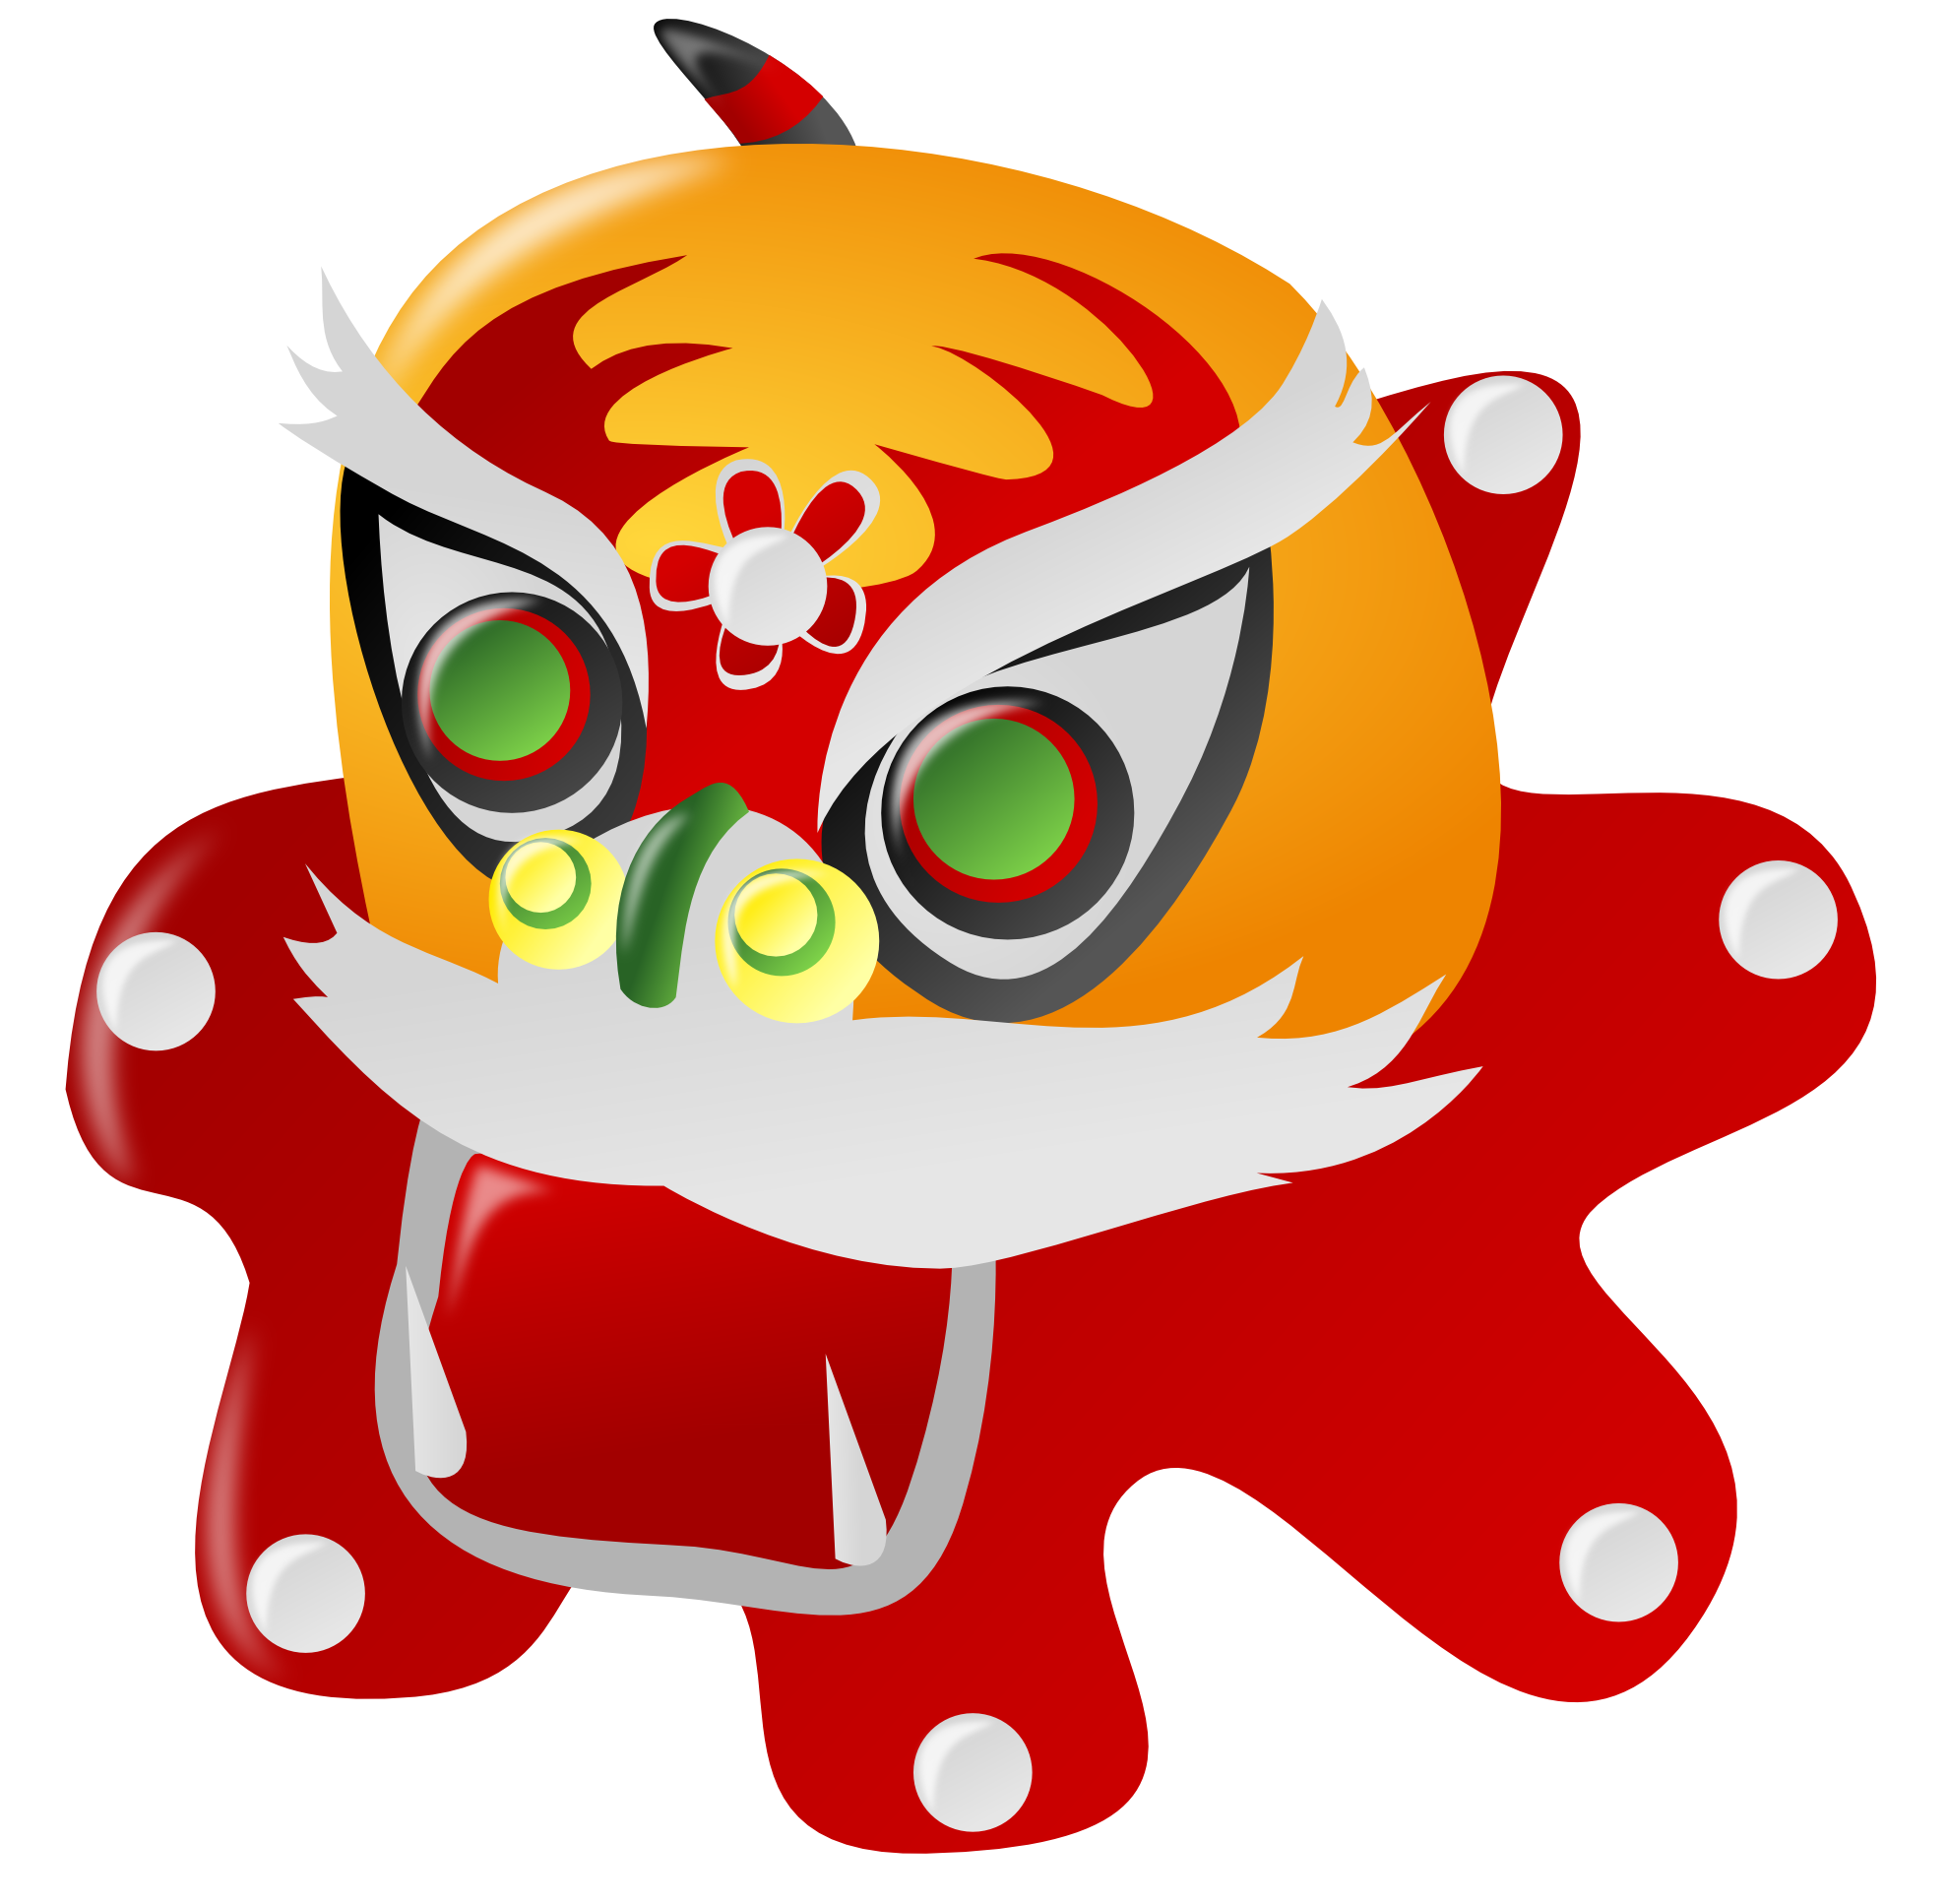 Chinese New Year Clipart - ClipArt Best